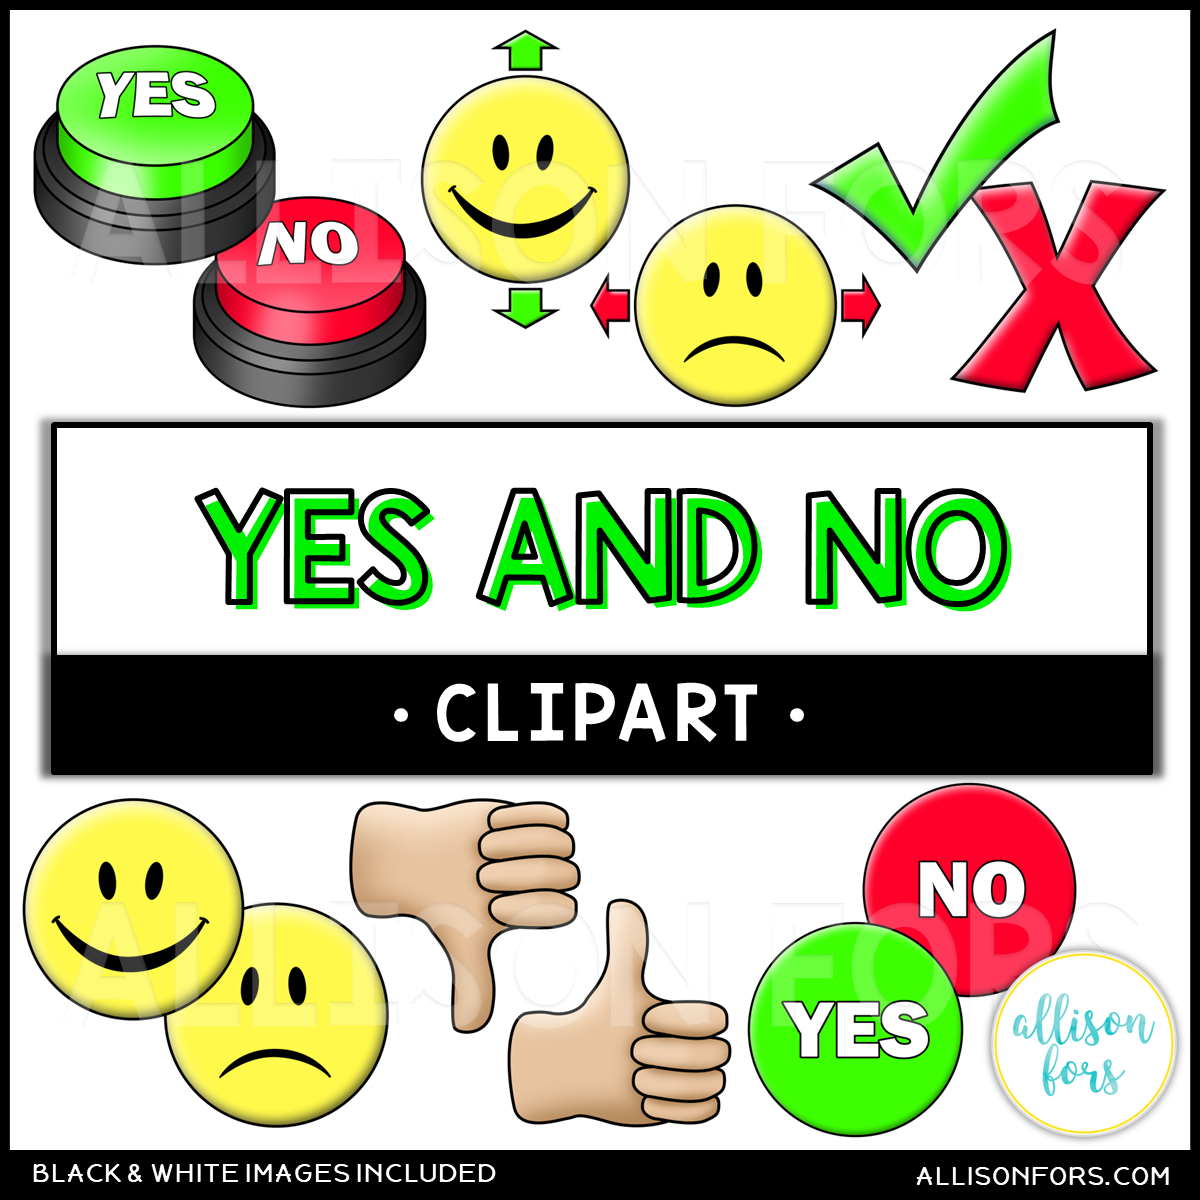 small resolution of yes and no clipart for educational resources use as visuals in speech therapy or special education classrooms includes head nod and shake thumbs up and